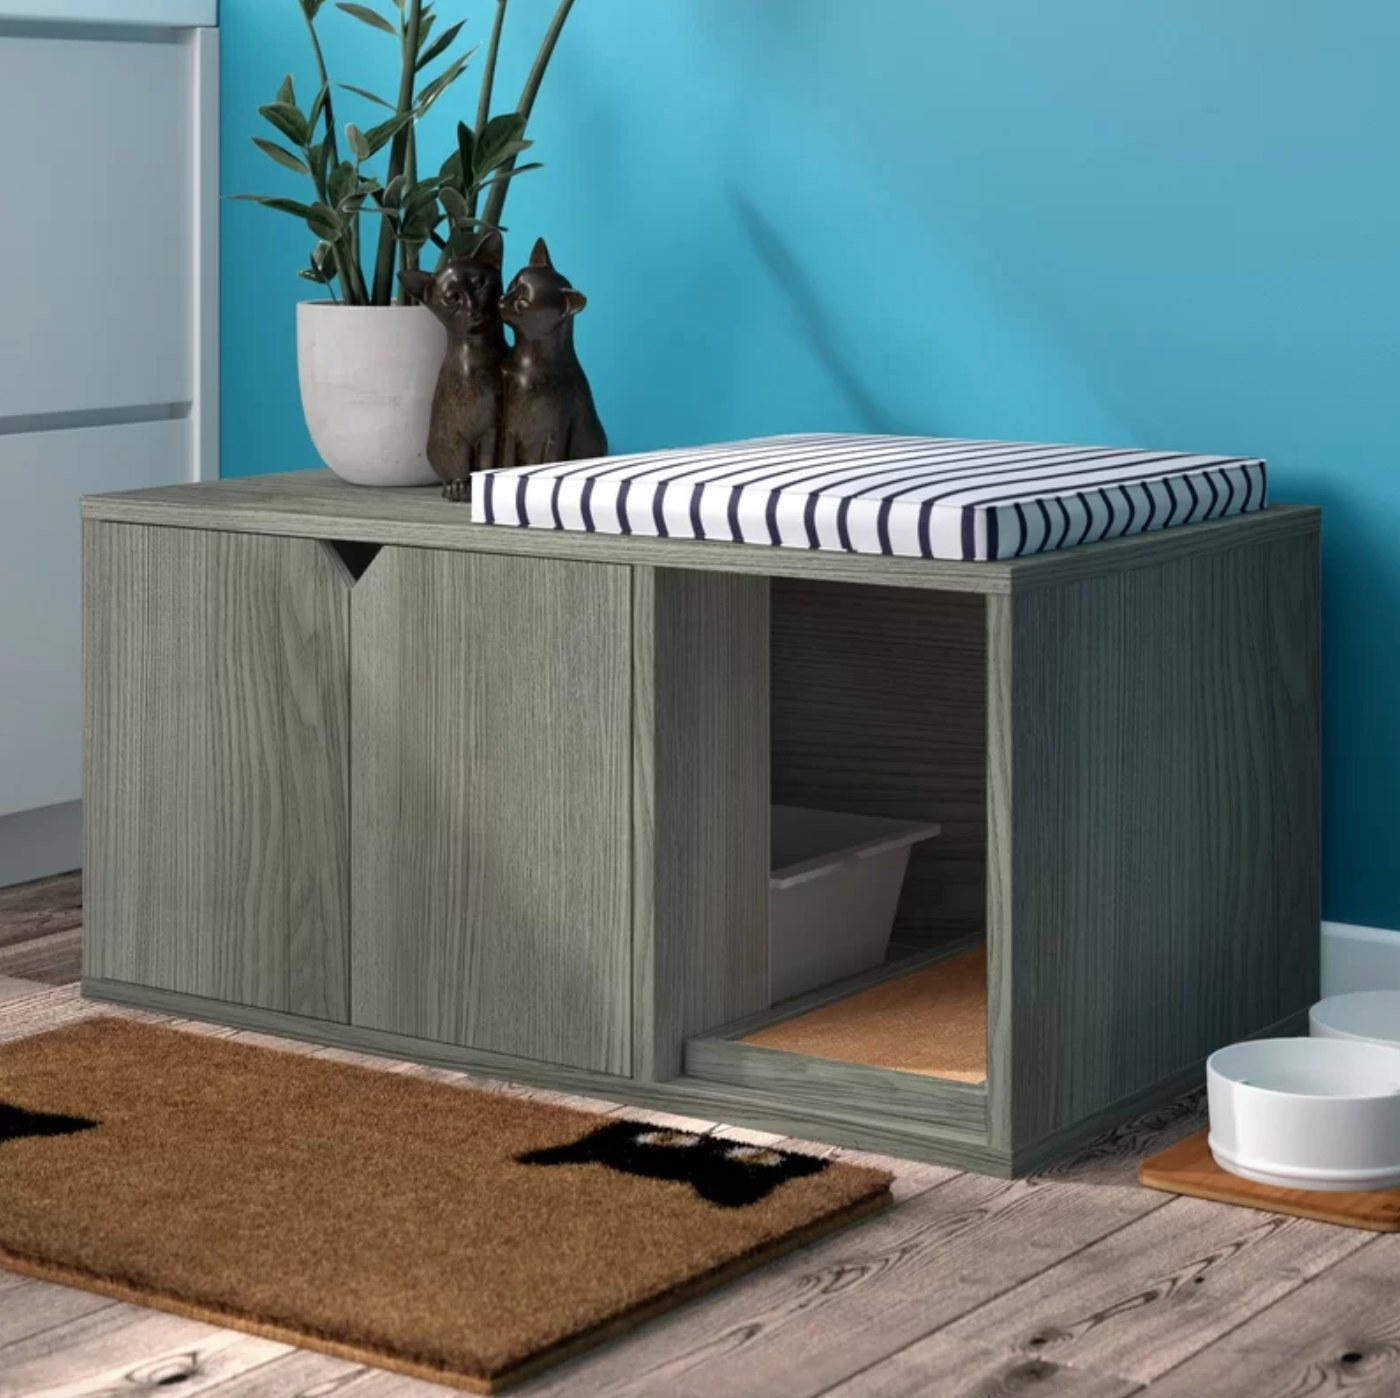 The litterbox enclosure in gray